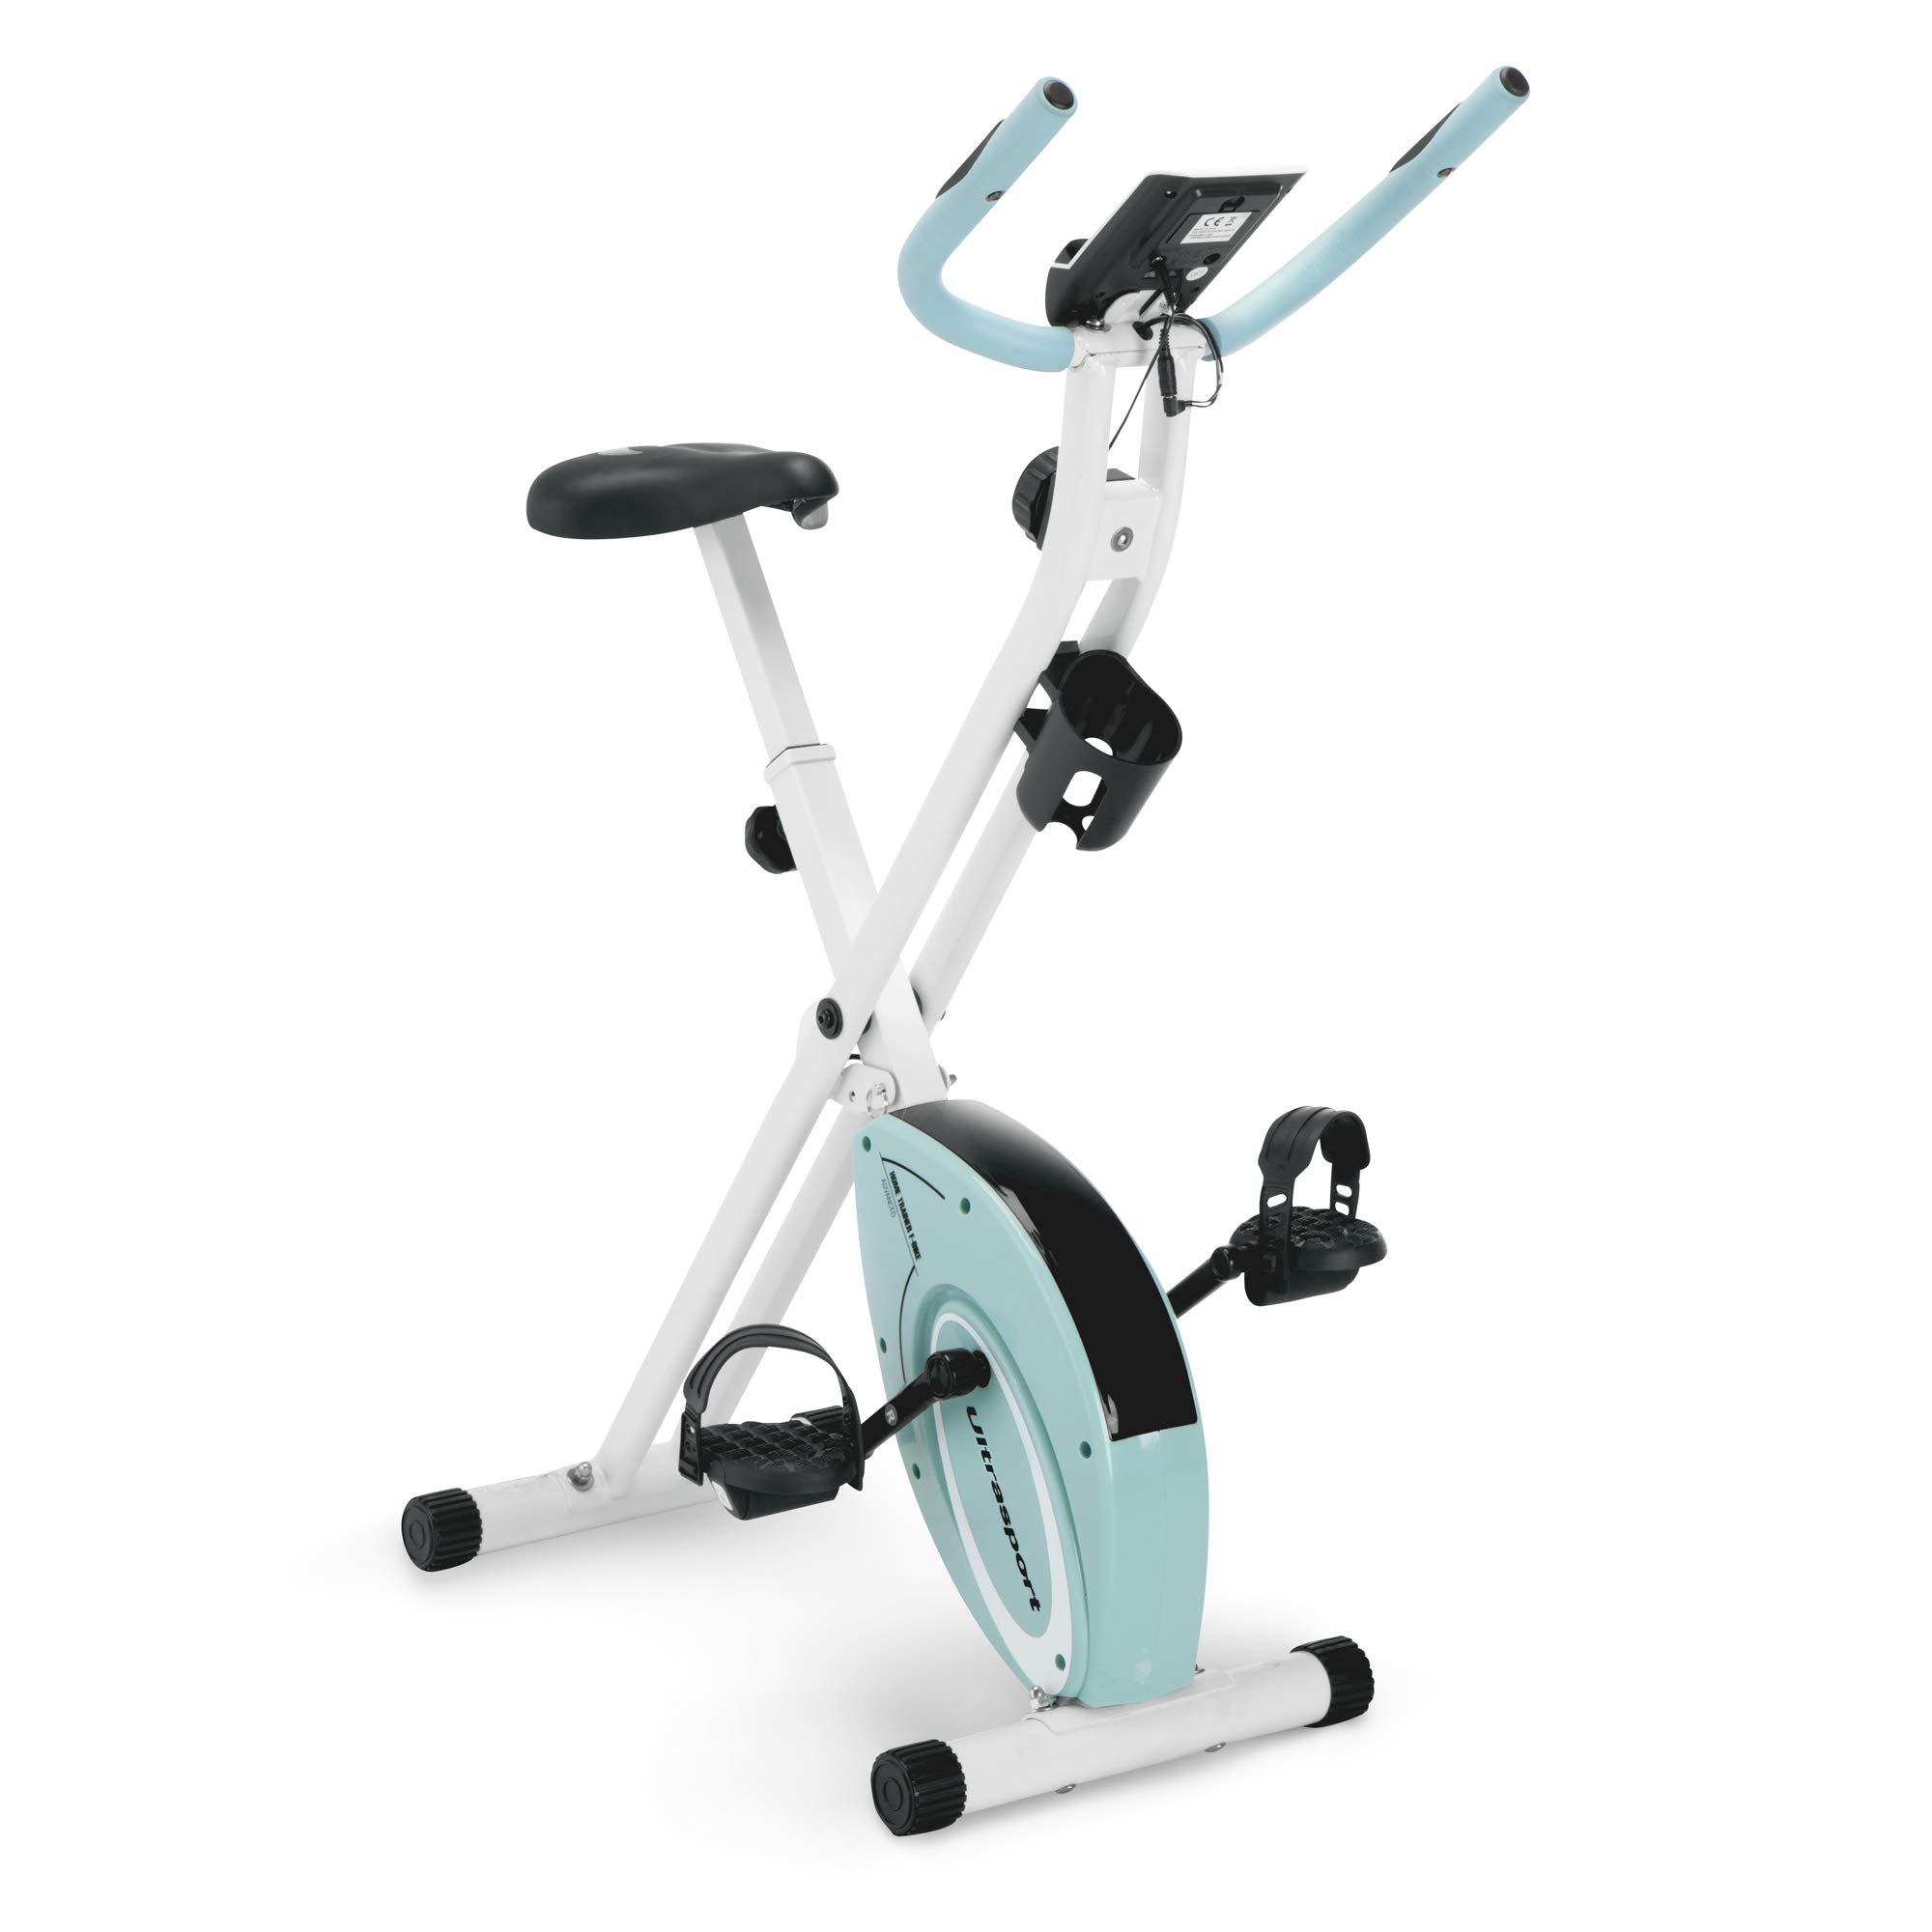 Marcy Foldable Upright Exercise Bike with Adjustable Resistance for Cardio Workout & Strength Training in Pink/Sky Blue/Navy Blue/Green/Black by Marcy